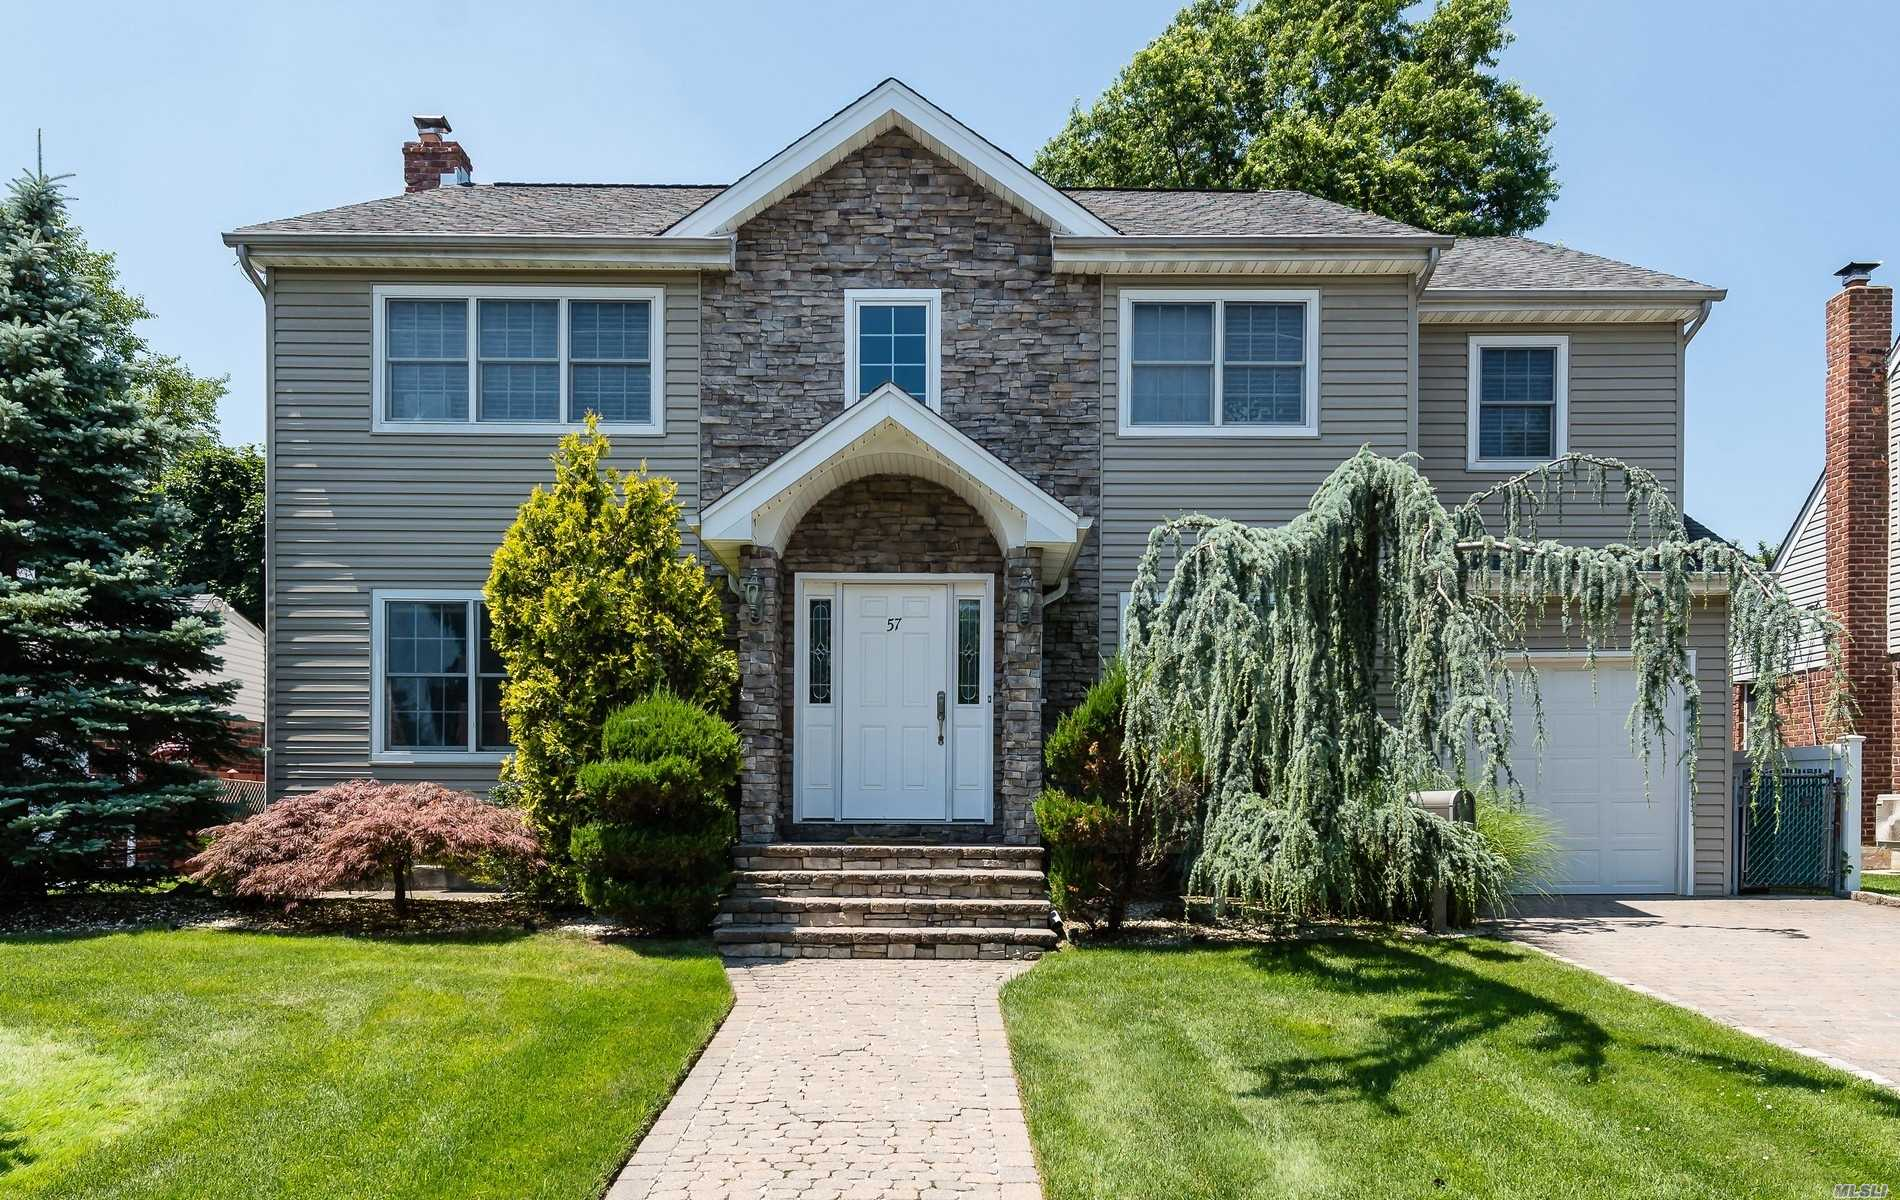 Call listing agent, Rebecca Zinn, for appointments. Move right into this completely updated 4 bedroom center hall colonial, 2 story foyer, open floor plan, hardwood floors, stainless steel appliances, large basement with office. Immaculate condition, excellent location. Herricks Schools